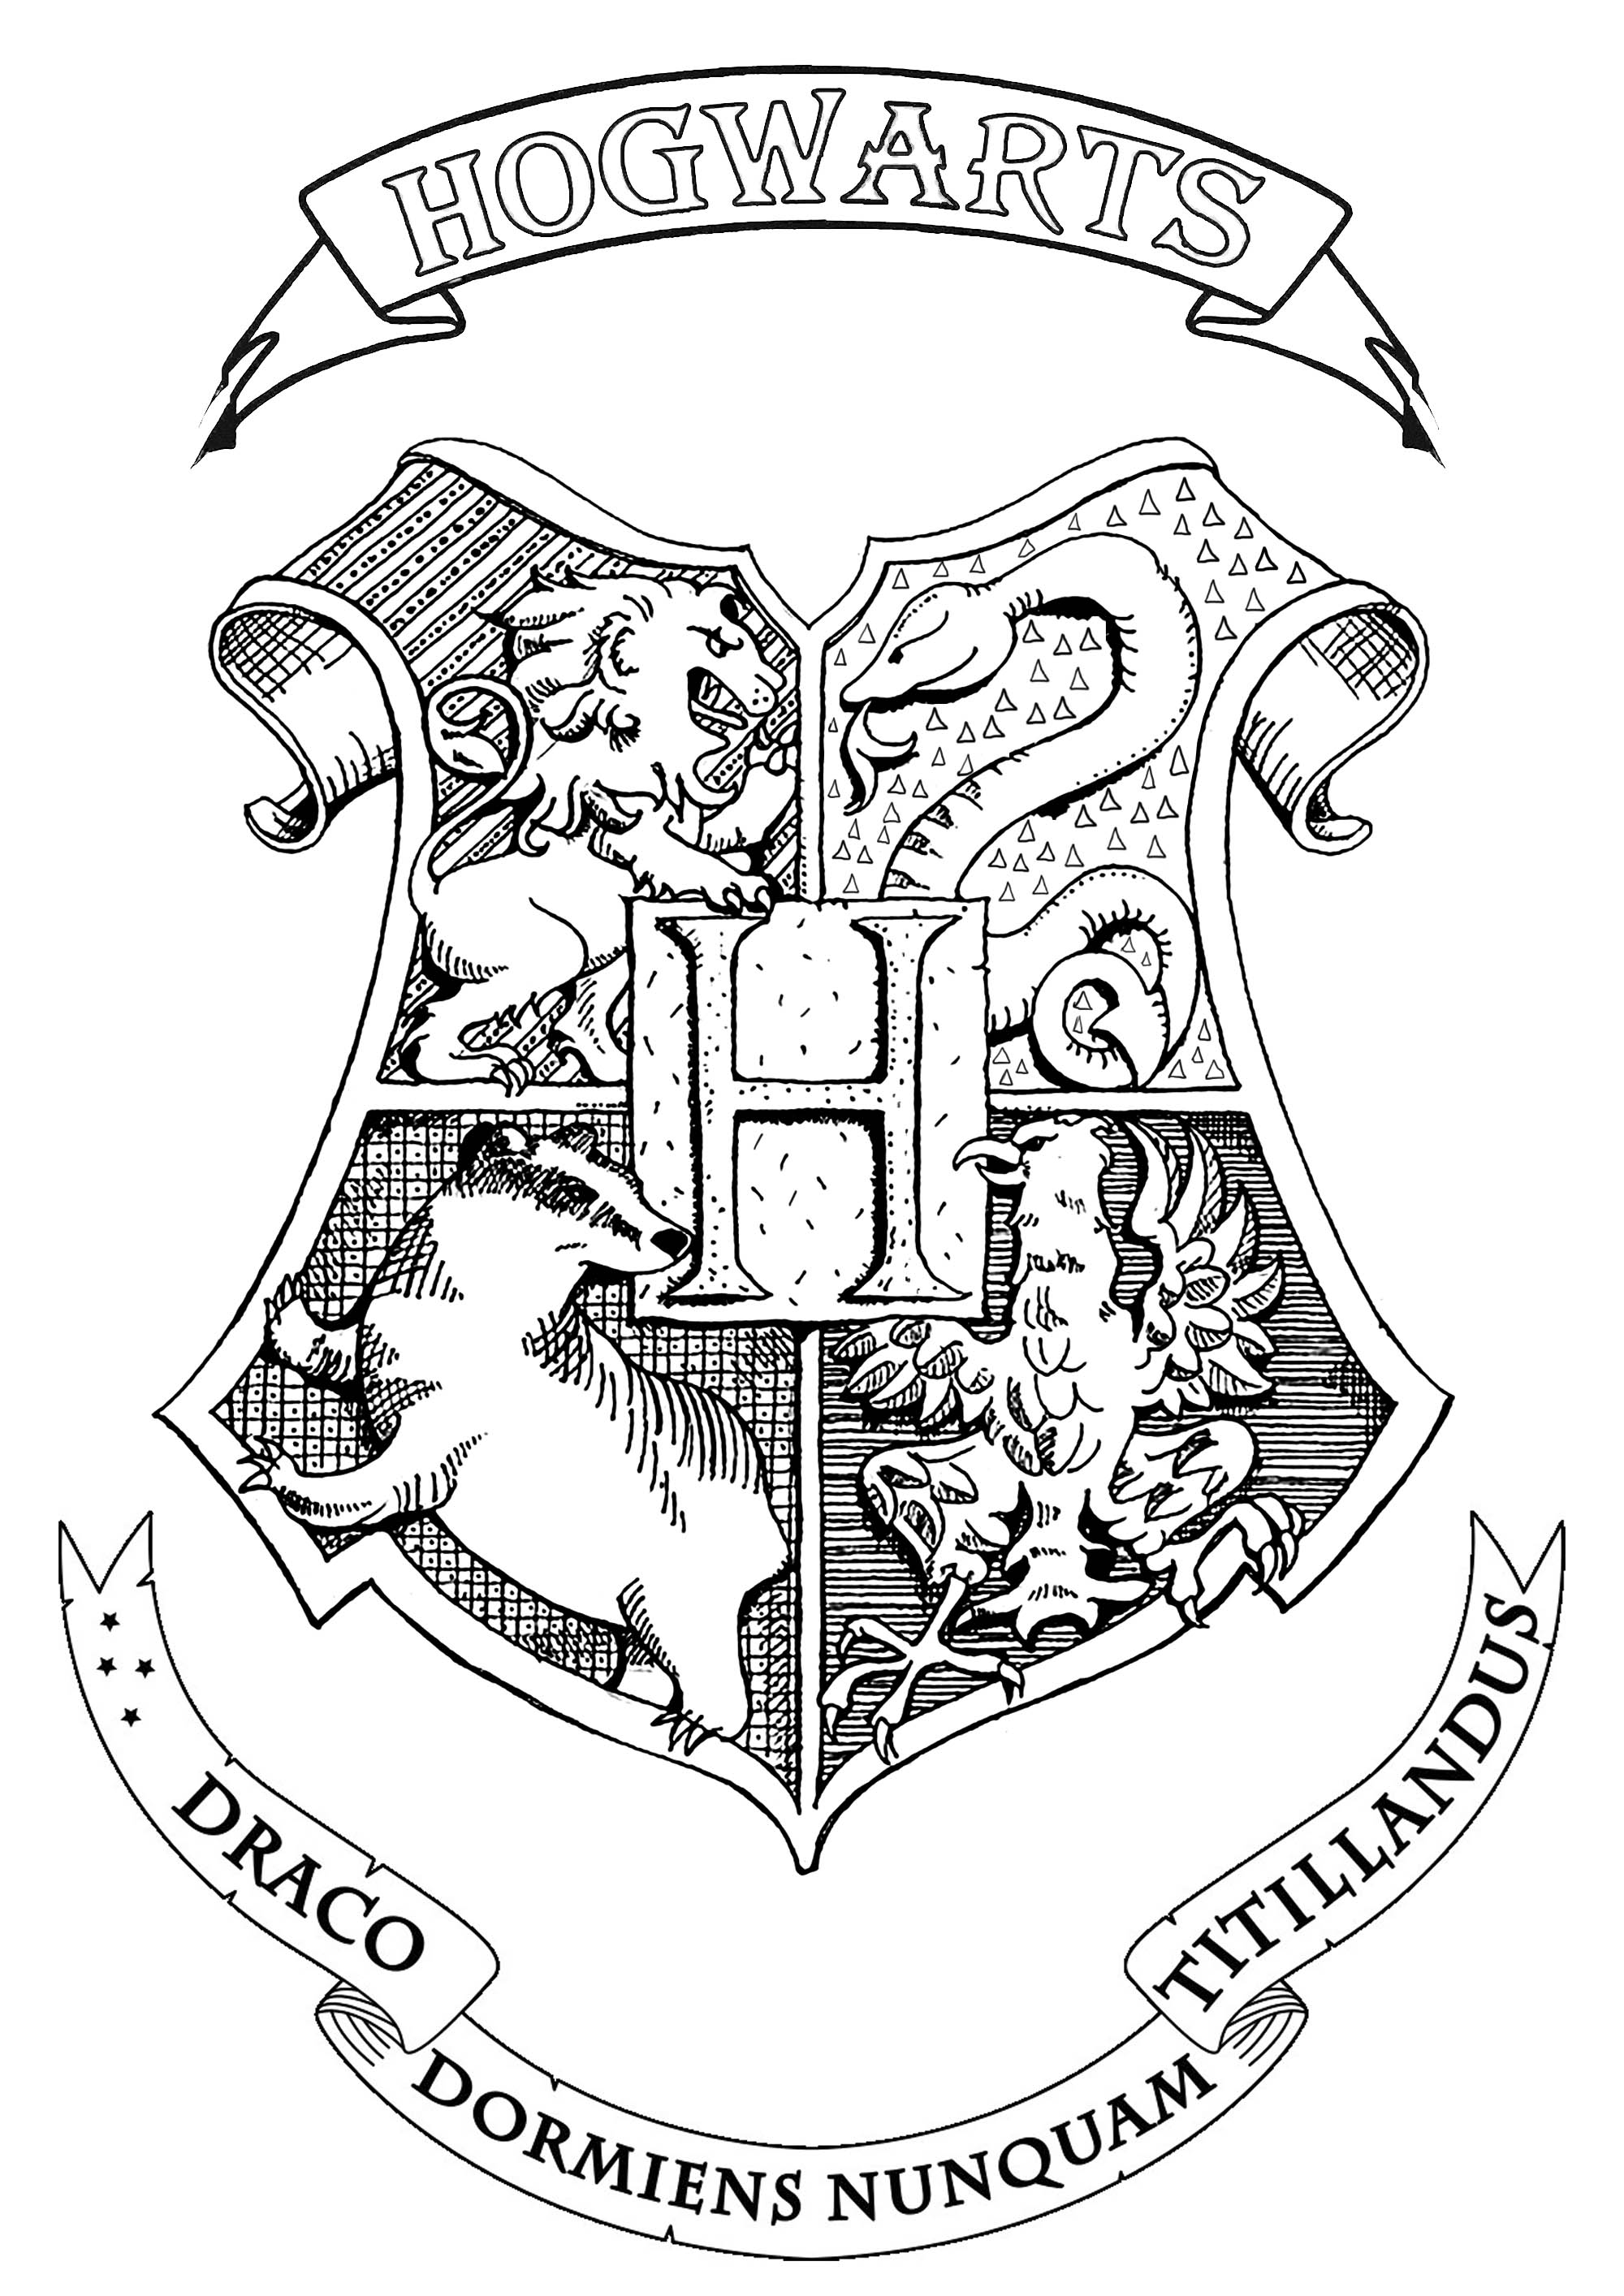 Symbol, emblem, seal, sign, logo or flag of Hogwarts : School of Witchcraft and Wizardry in Harry Potter books.